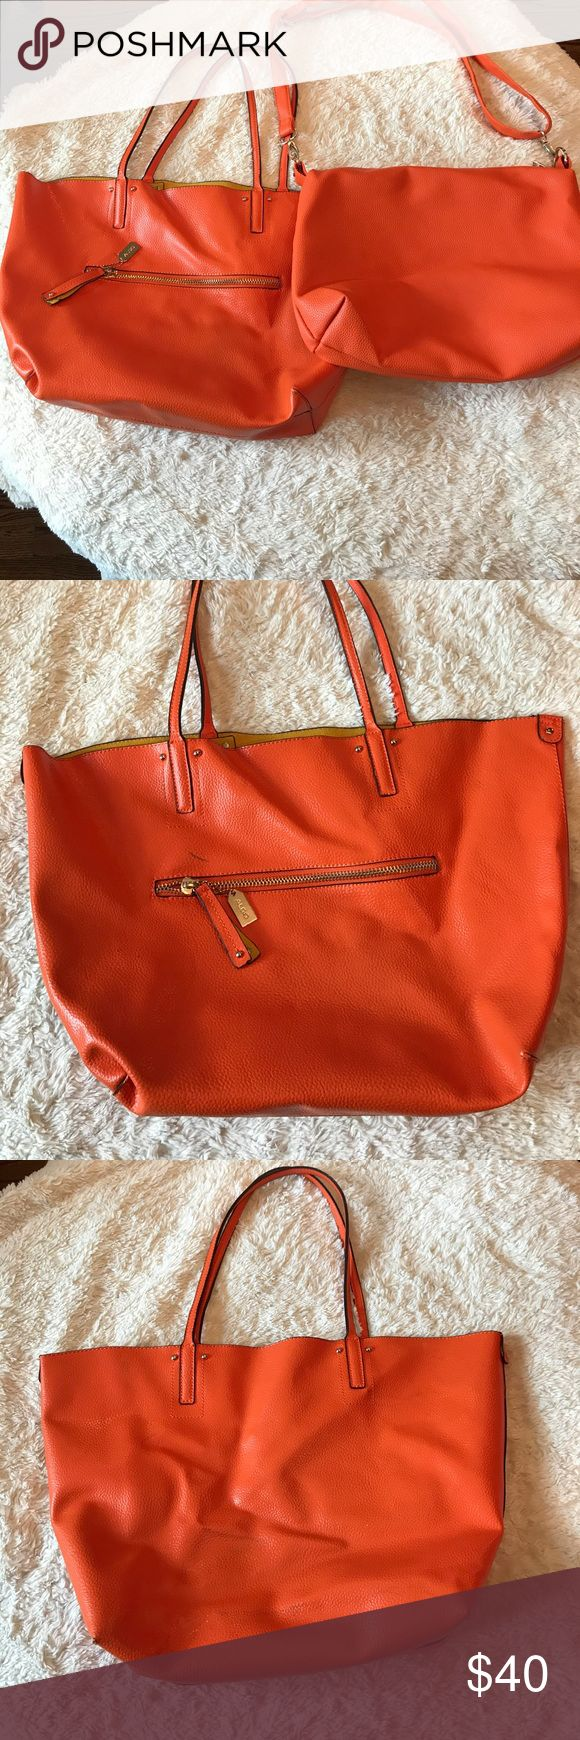 ORANGE Aldo tote bag DUO This listing comes with 2 bags.  One shoulder strap tote with the matching bag that can be worn inside the tote or separately.  Second bag has adjustable strap.  Note marks on tote bag  (pictured). Aldo Bags Totes